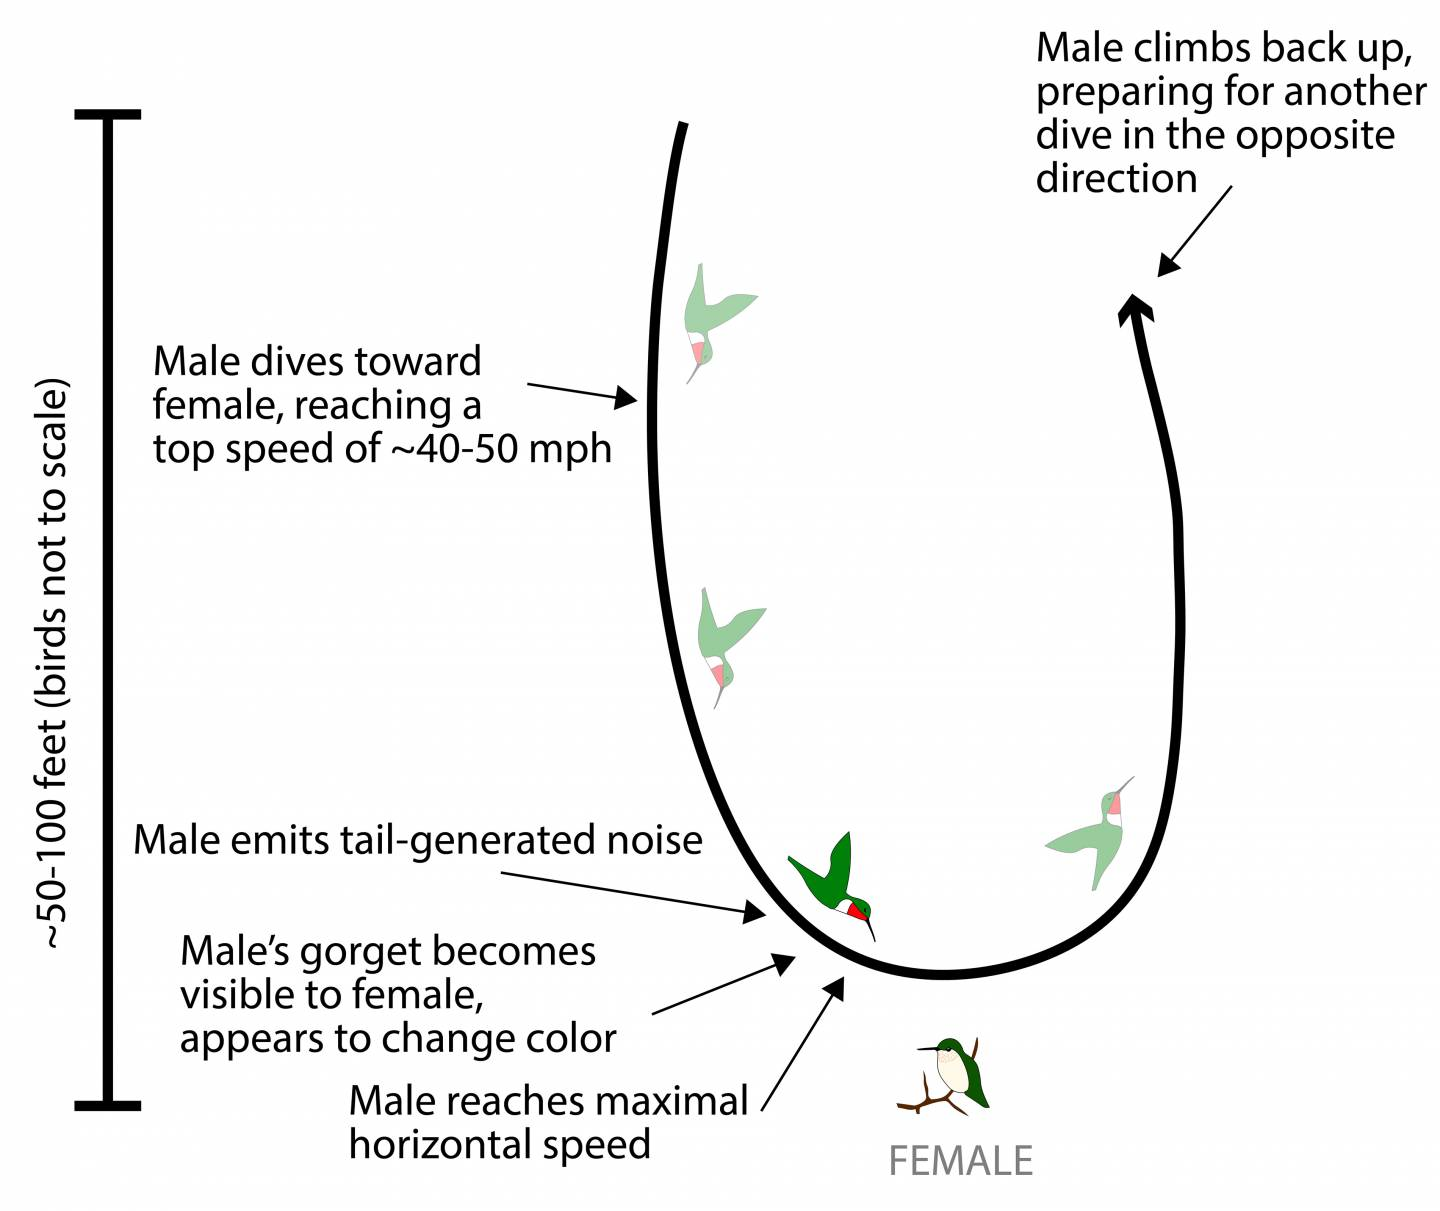 "Illustration of the flight pattern and courtship rituals of hummingbirds ""Male dives toward female, reaching a top speed of ~40-50 mph"" ""Male emits tail-generated noise"" ""Male's gorget becomes visible to female, appears to change color"" ""Male reaches maximal horizontal speed [towards female]"" ""Male climbs back up, preparing for another dive in the opposite direction"""